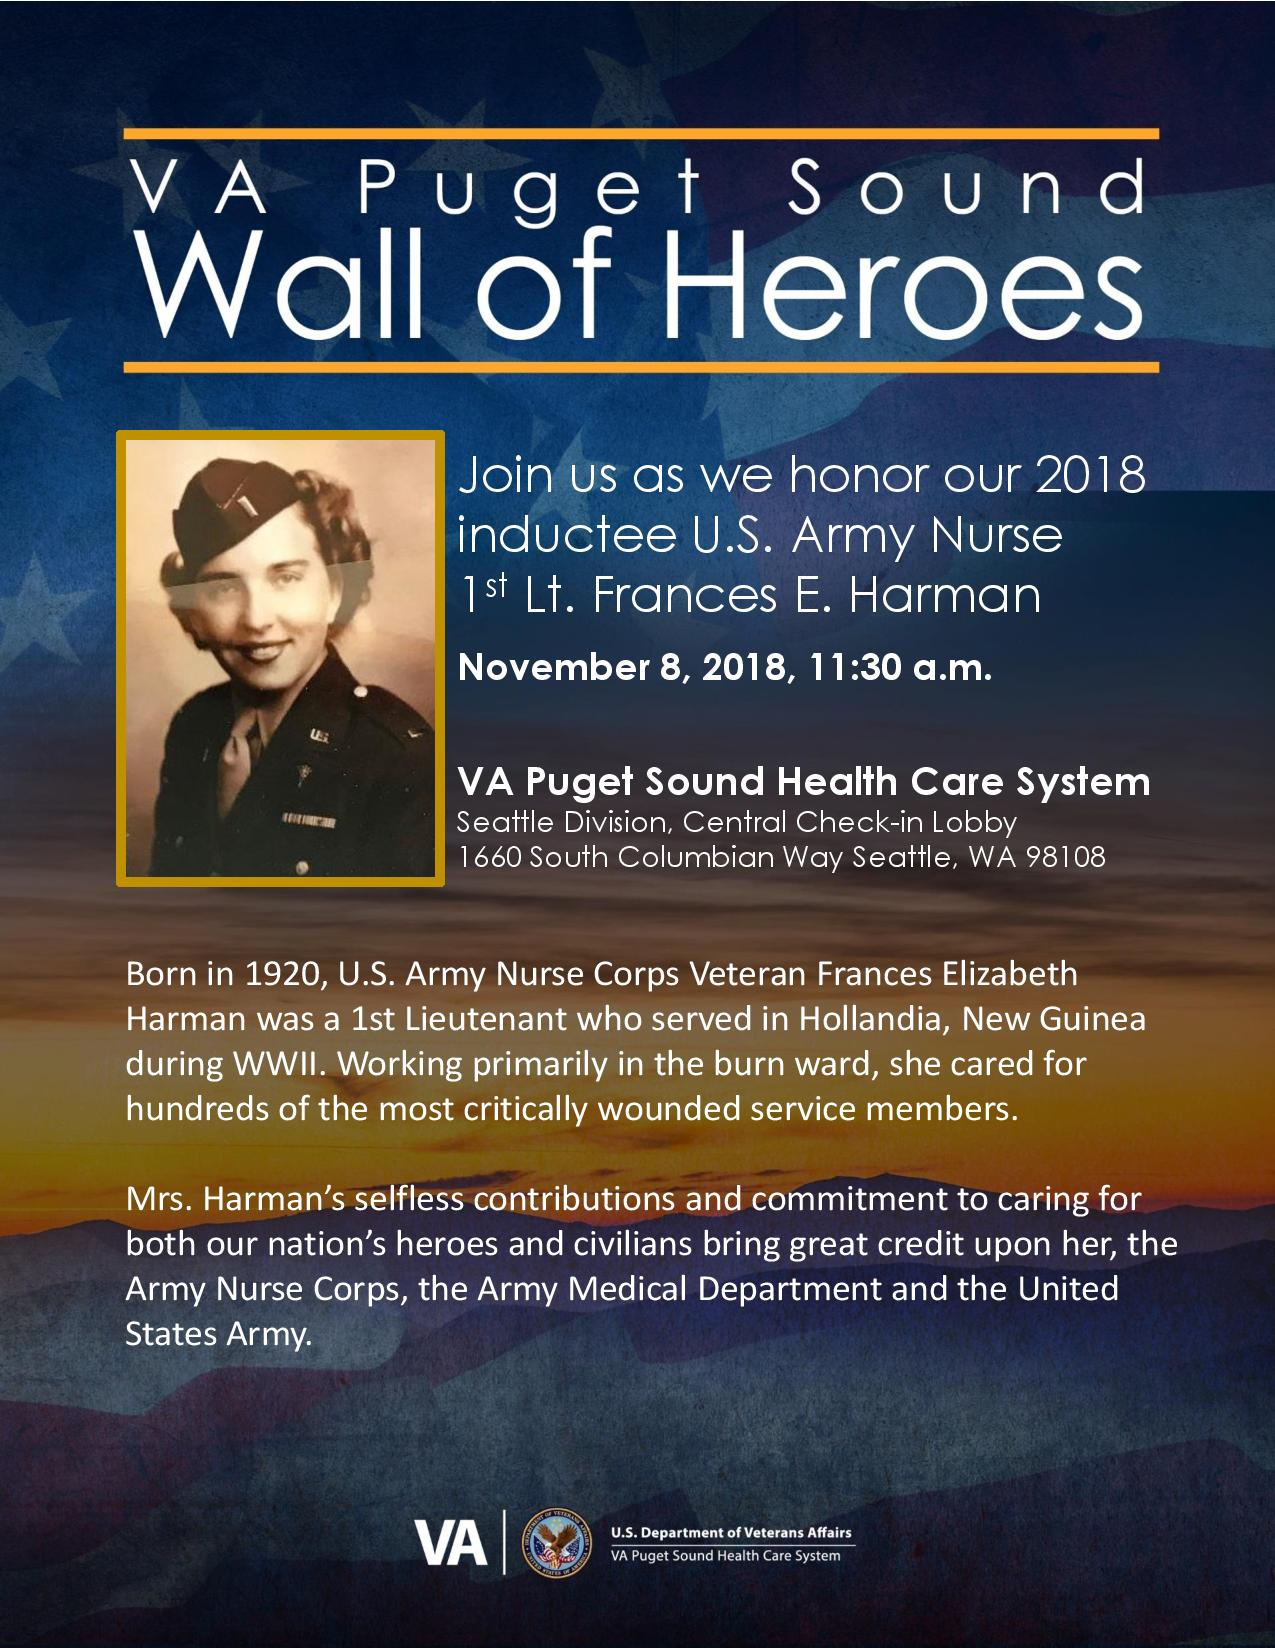 VA Puget Sound Wall of Heroes Flyer FINAL (002)-page-001.jpg